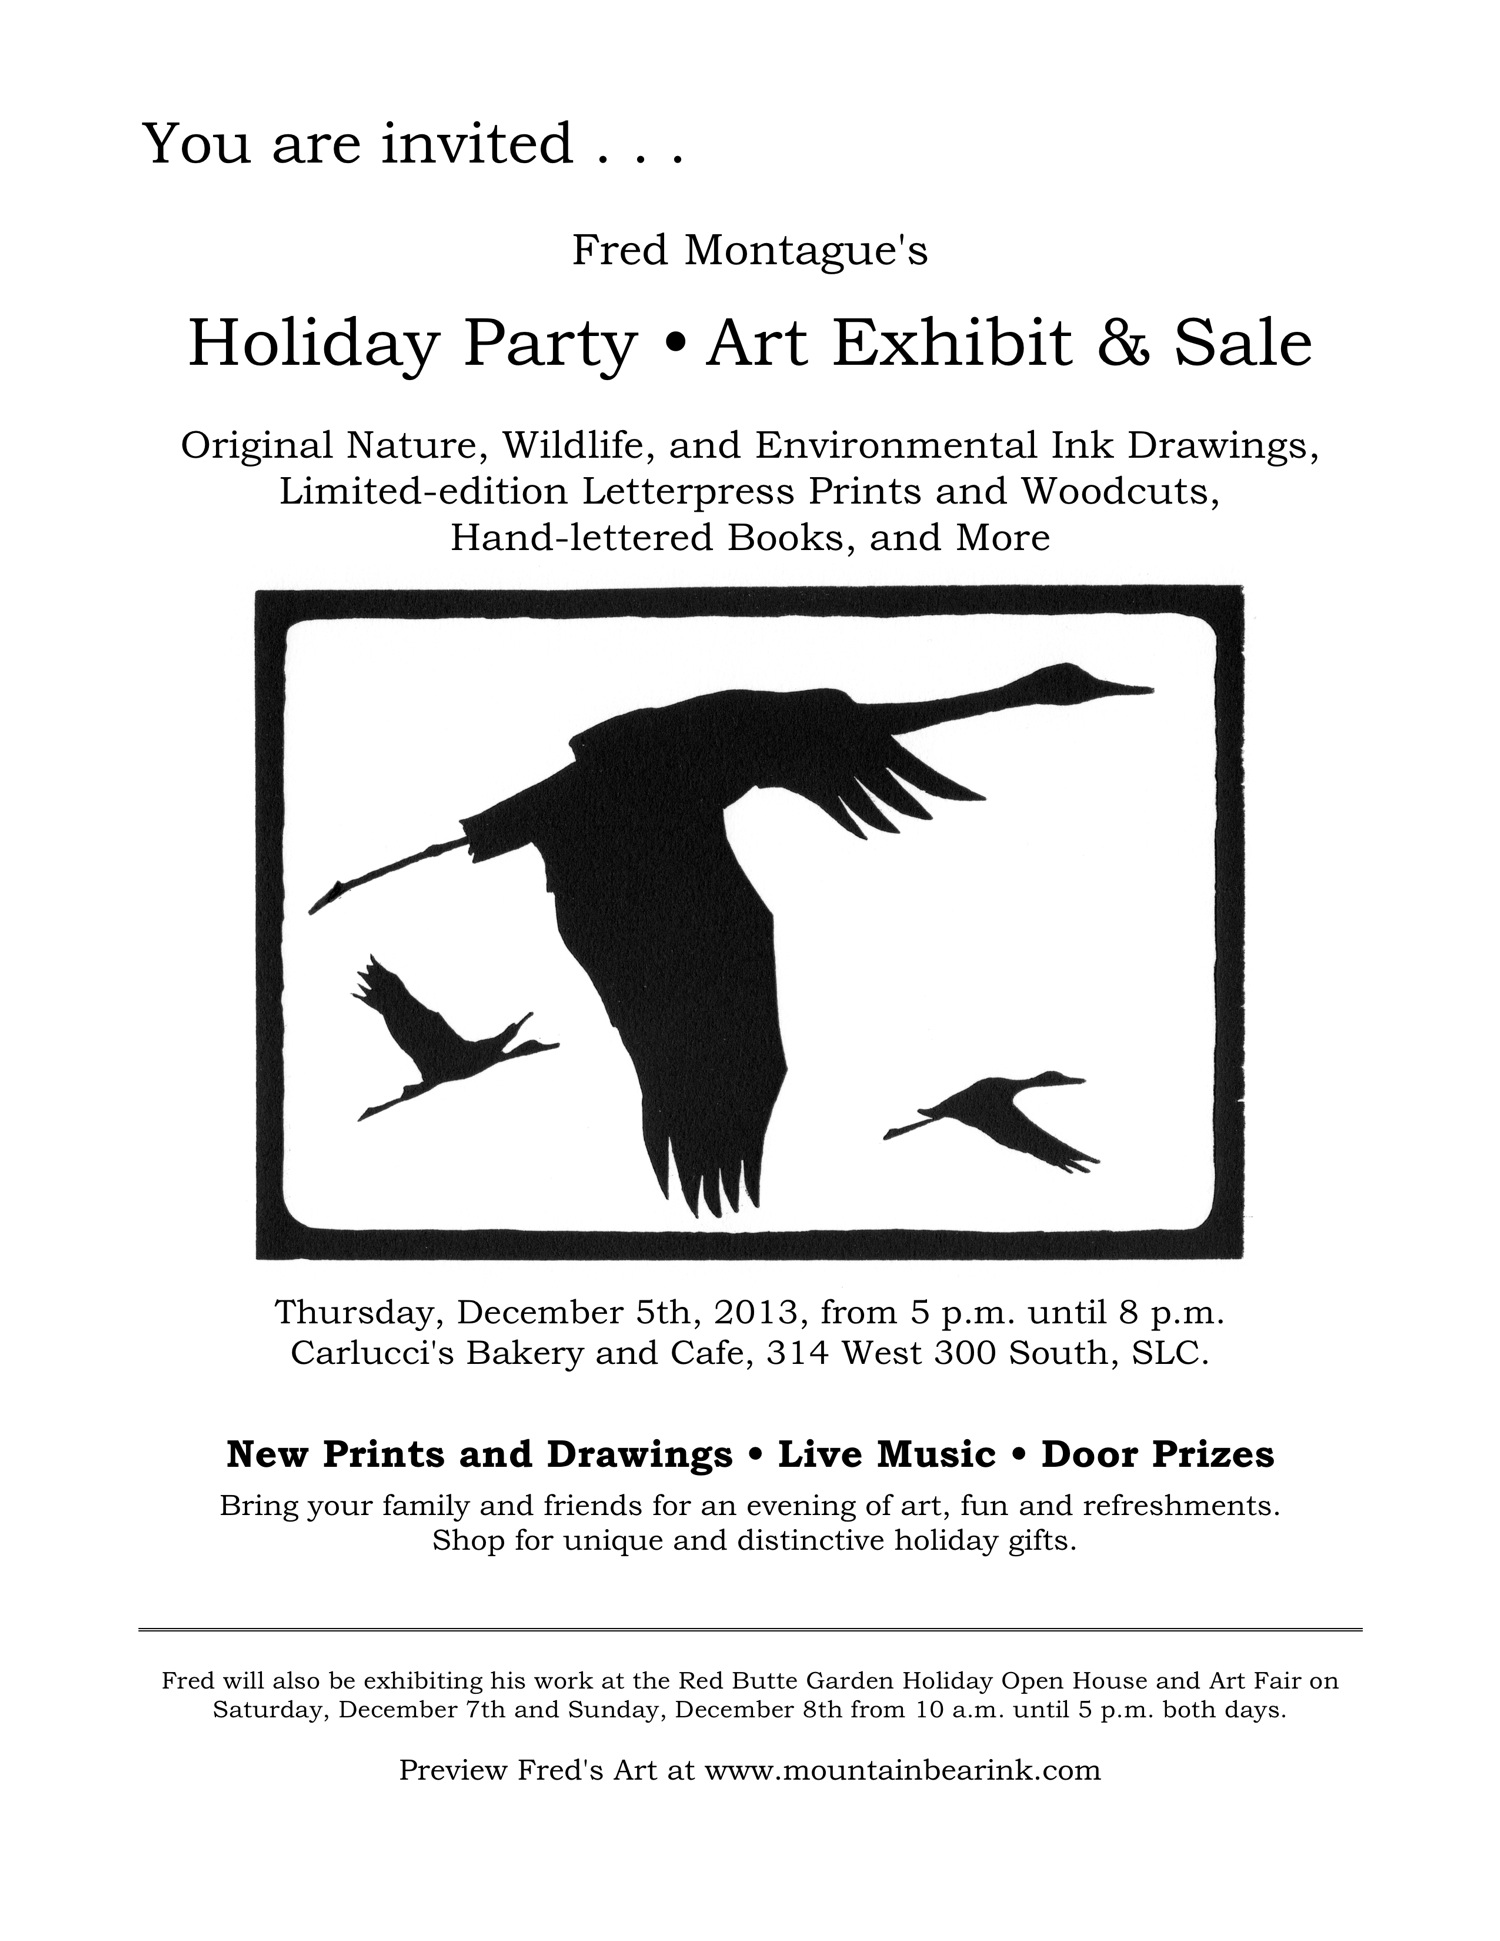 Art Party and Sale Invitation, December 5th, 2013, Carlucci's Bakery, Salt Lake City.